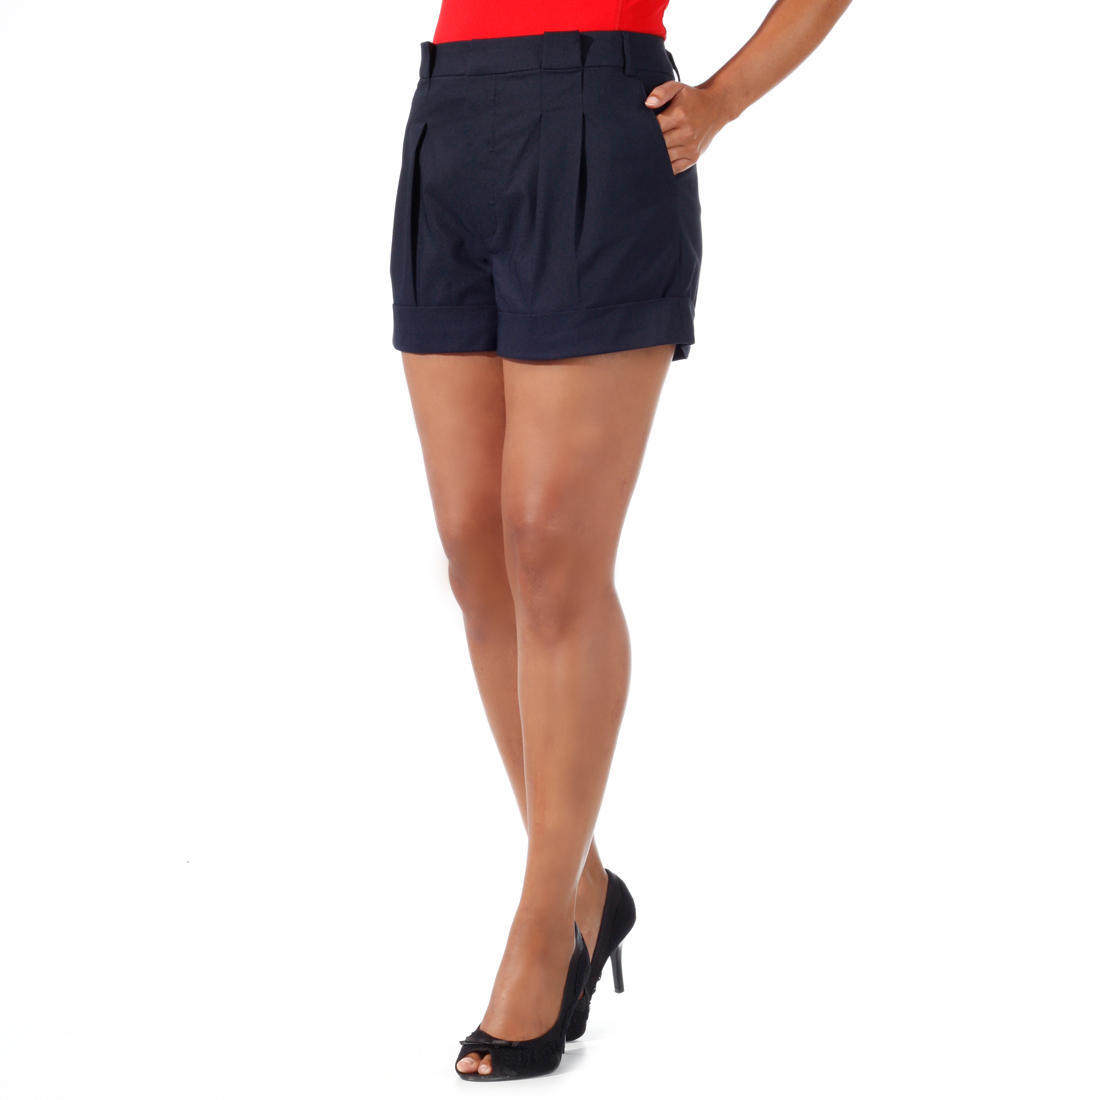 Damen-Shorts aus elastischer Technostretch-Faser